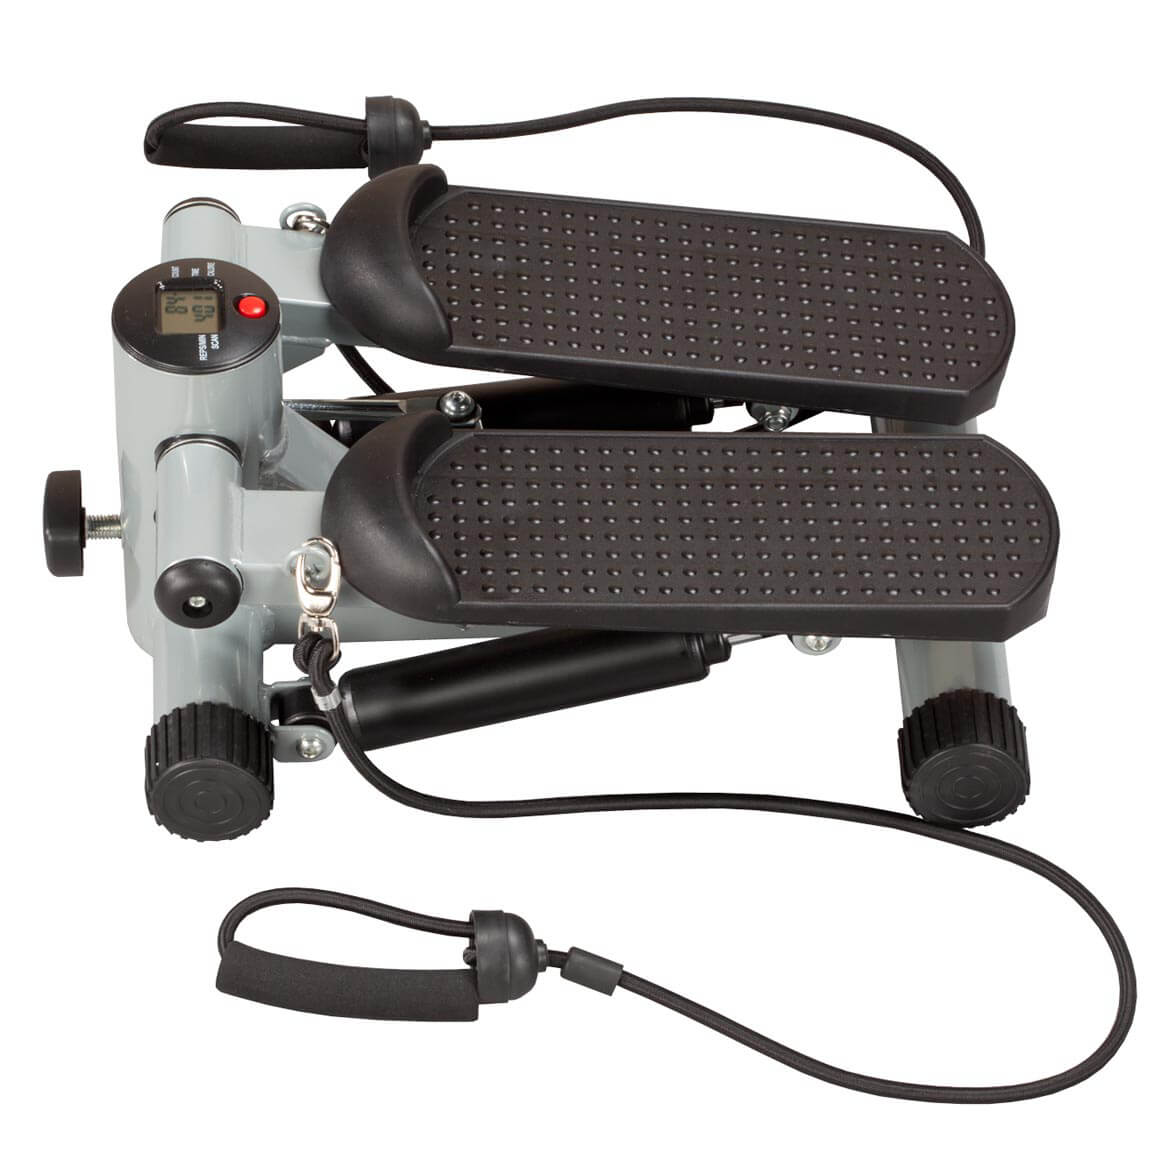 Seated Stepper with Resistance Bands